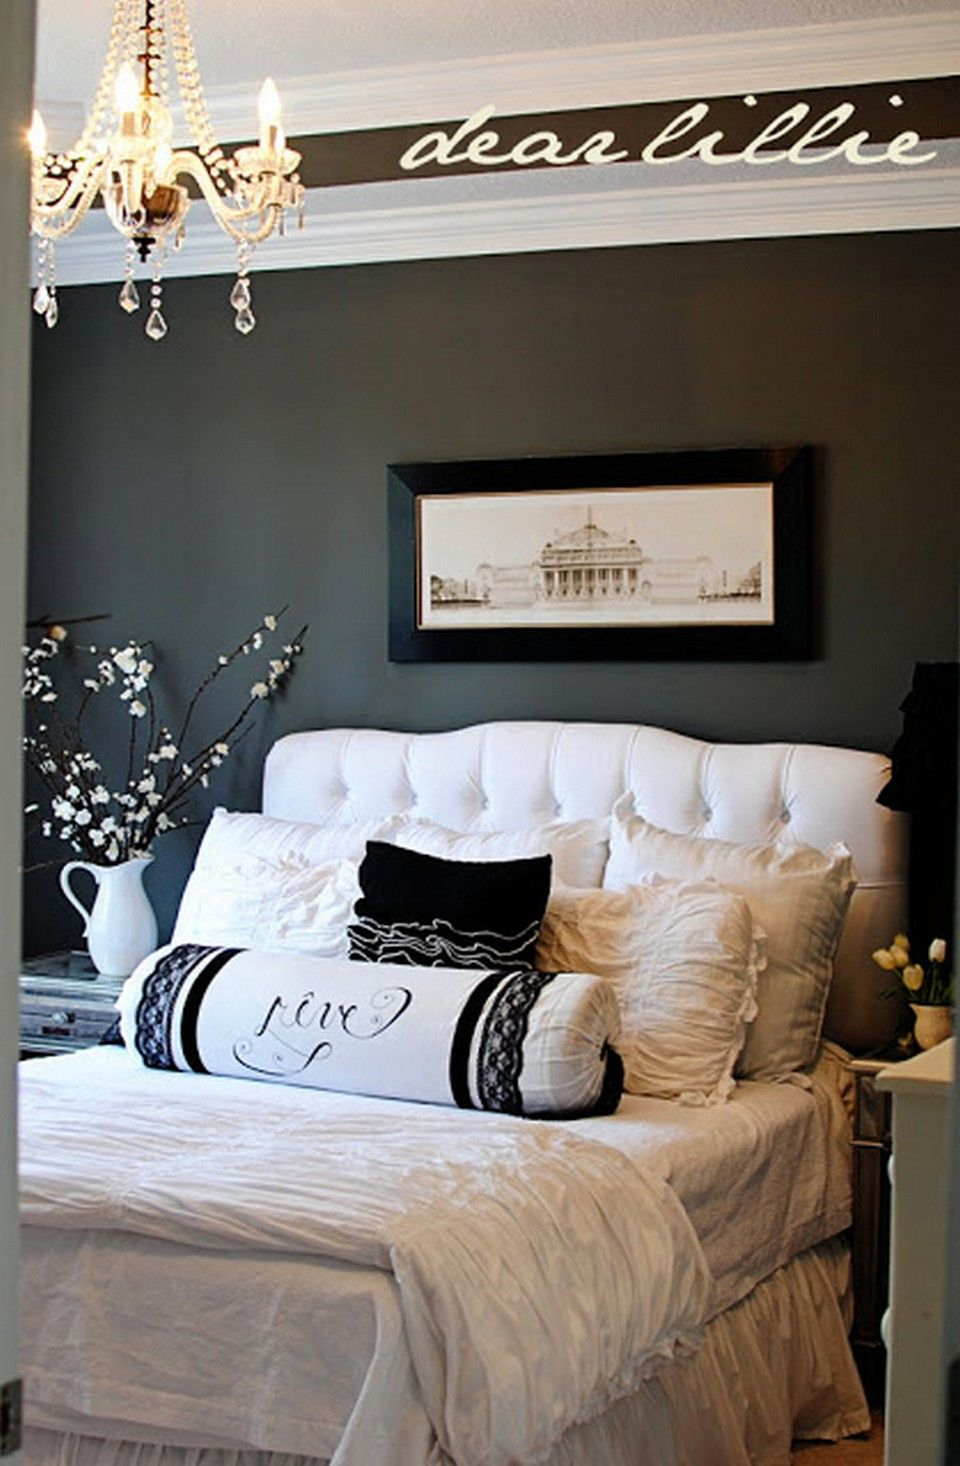 Bedroom Design Ideas On A Budget Prepossessing Nice 99 Brilliant Romantic Bedroom Design Ideas On A Budget Http Decorating Inspiration